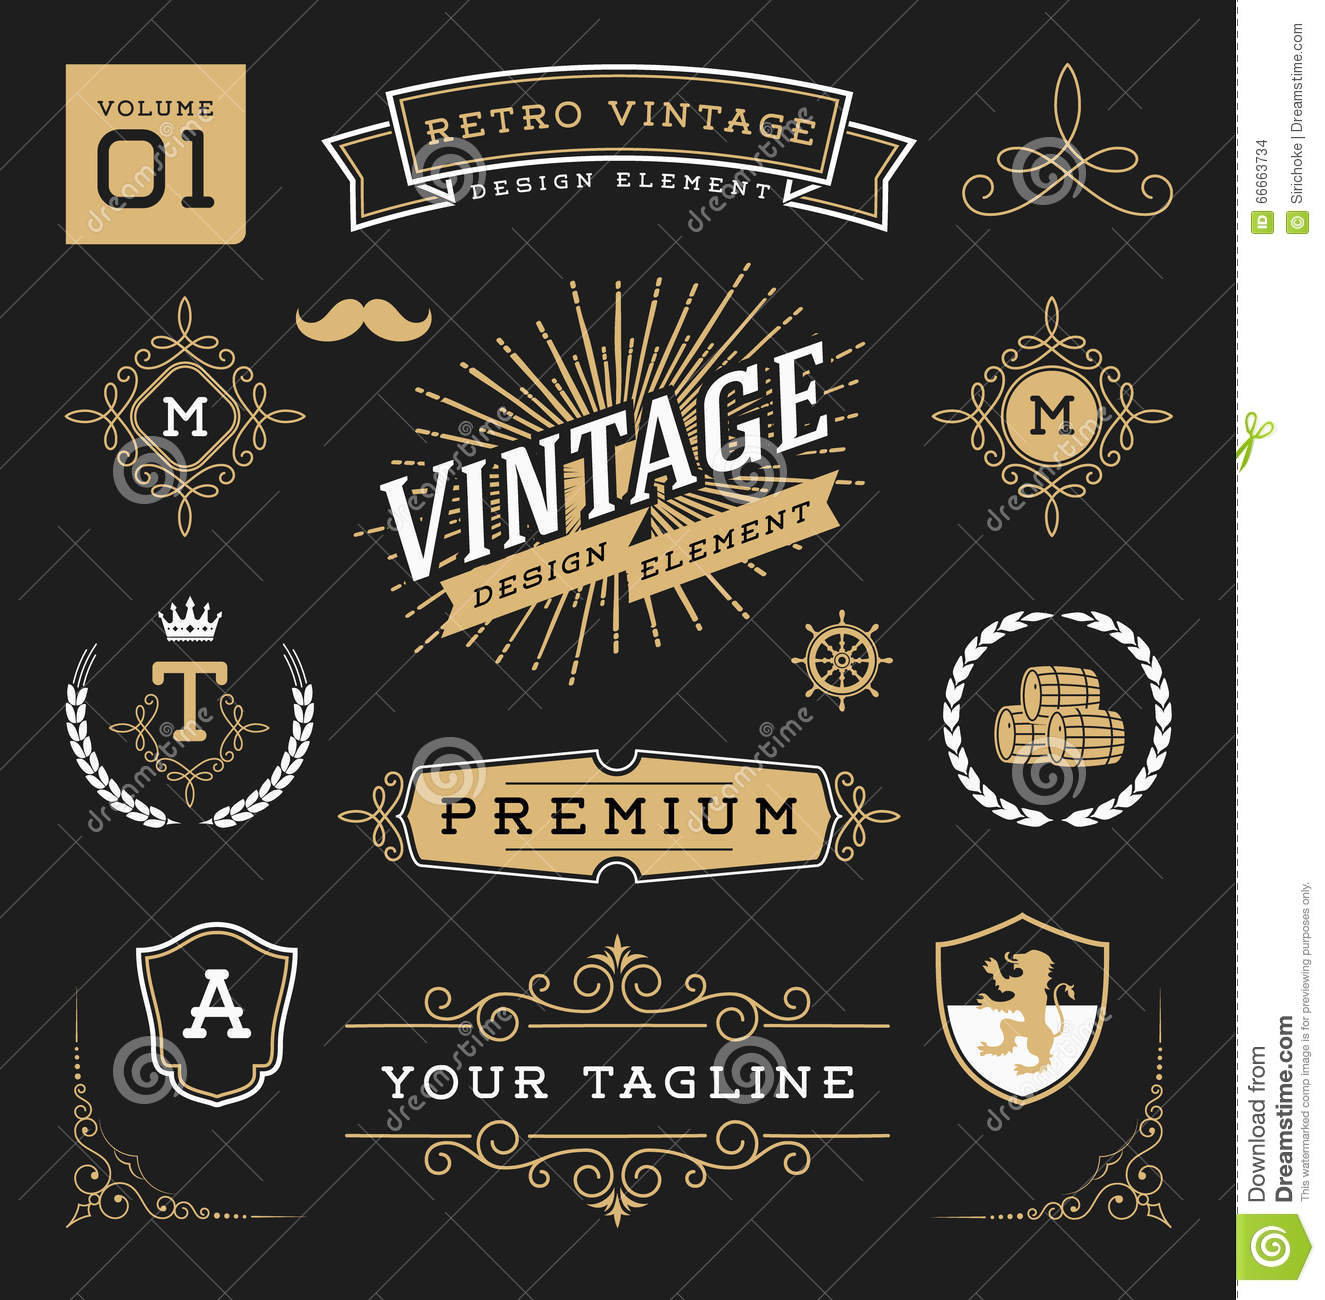 Vintage Design Vintage Graphic Design Elements Home Related Vector